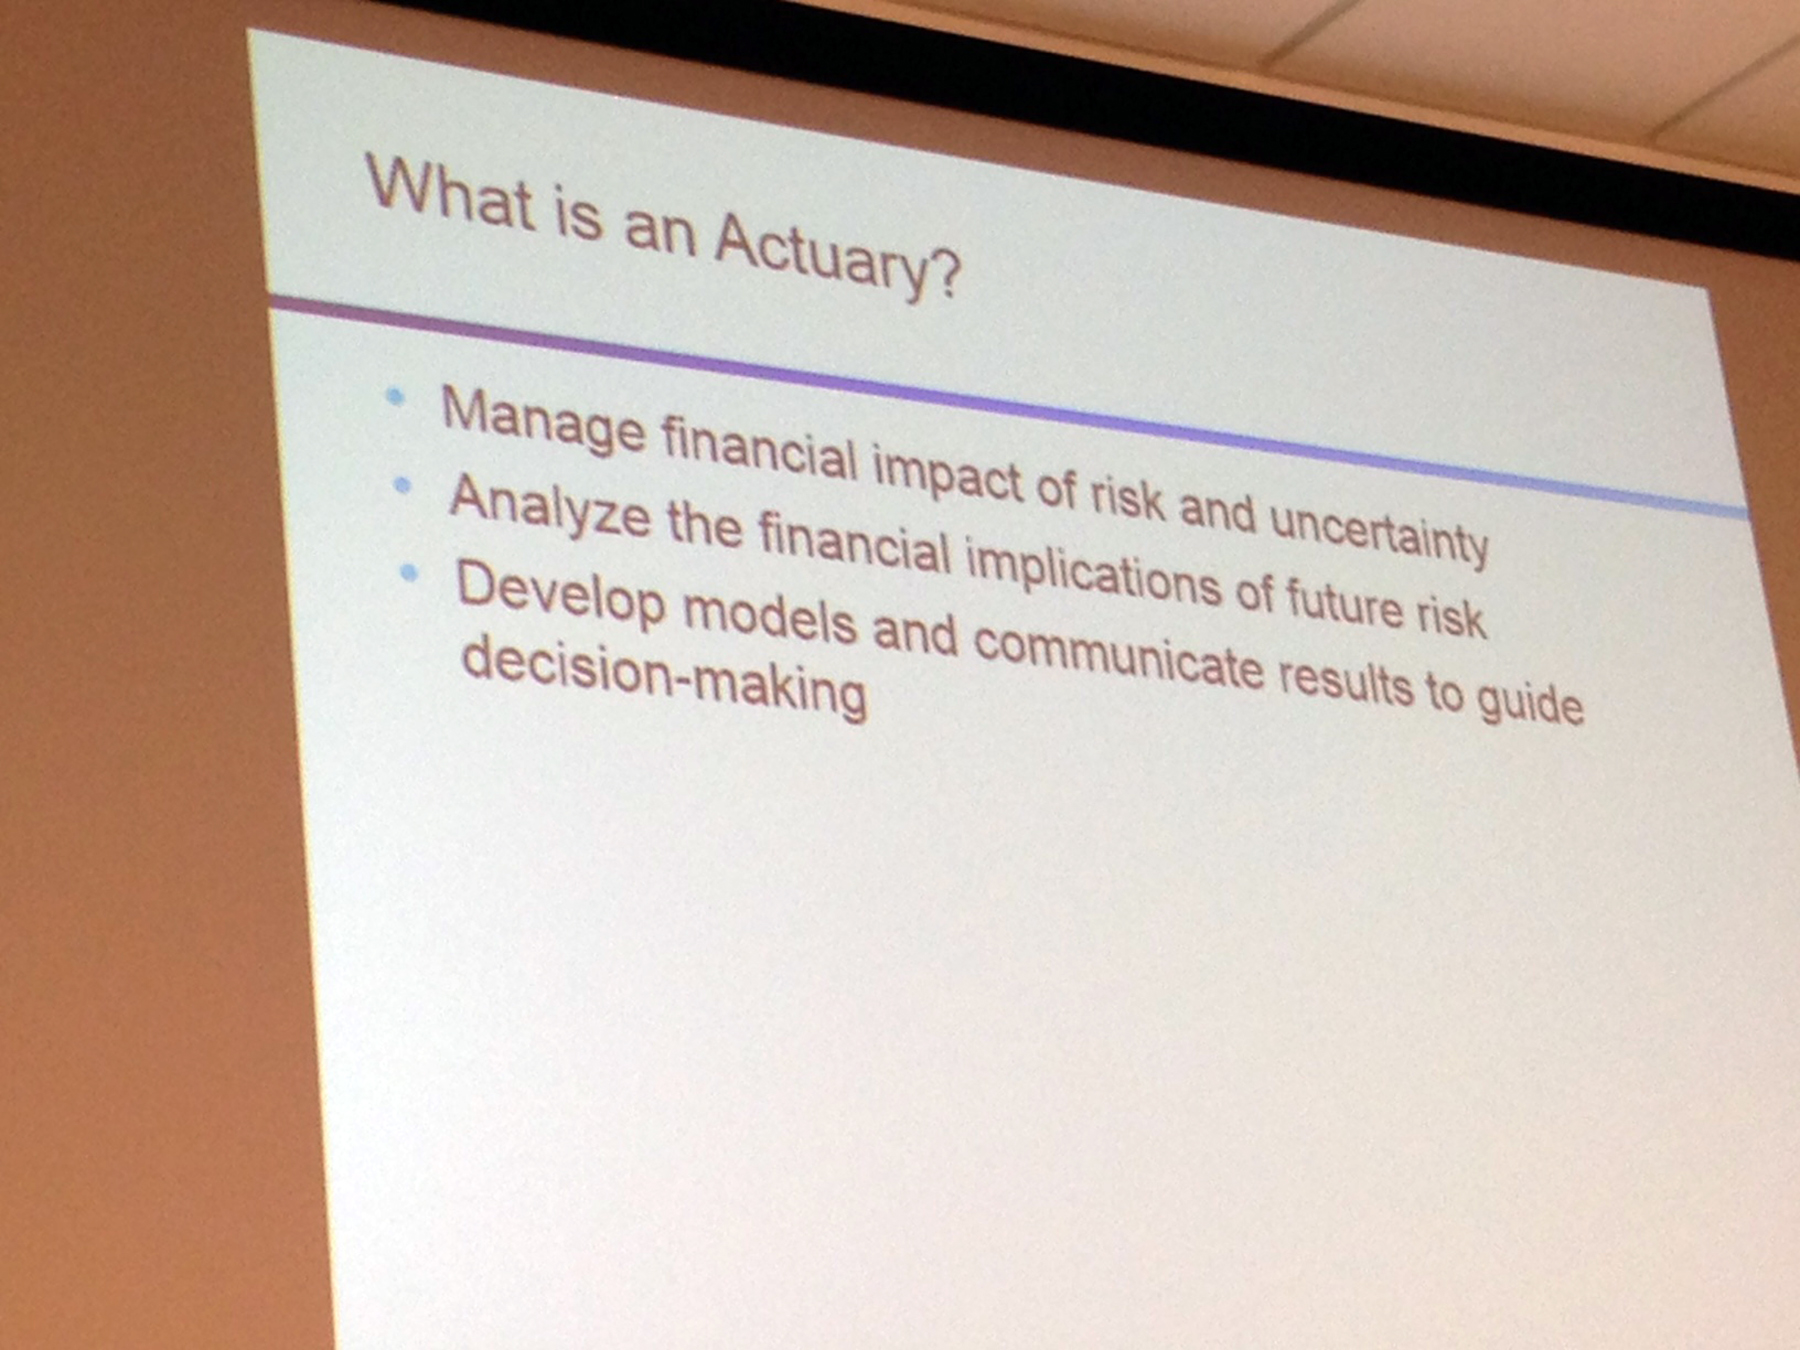 What is an Actuary